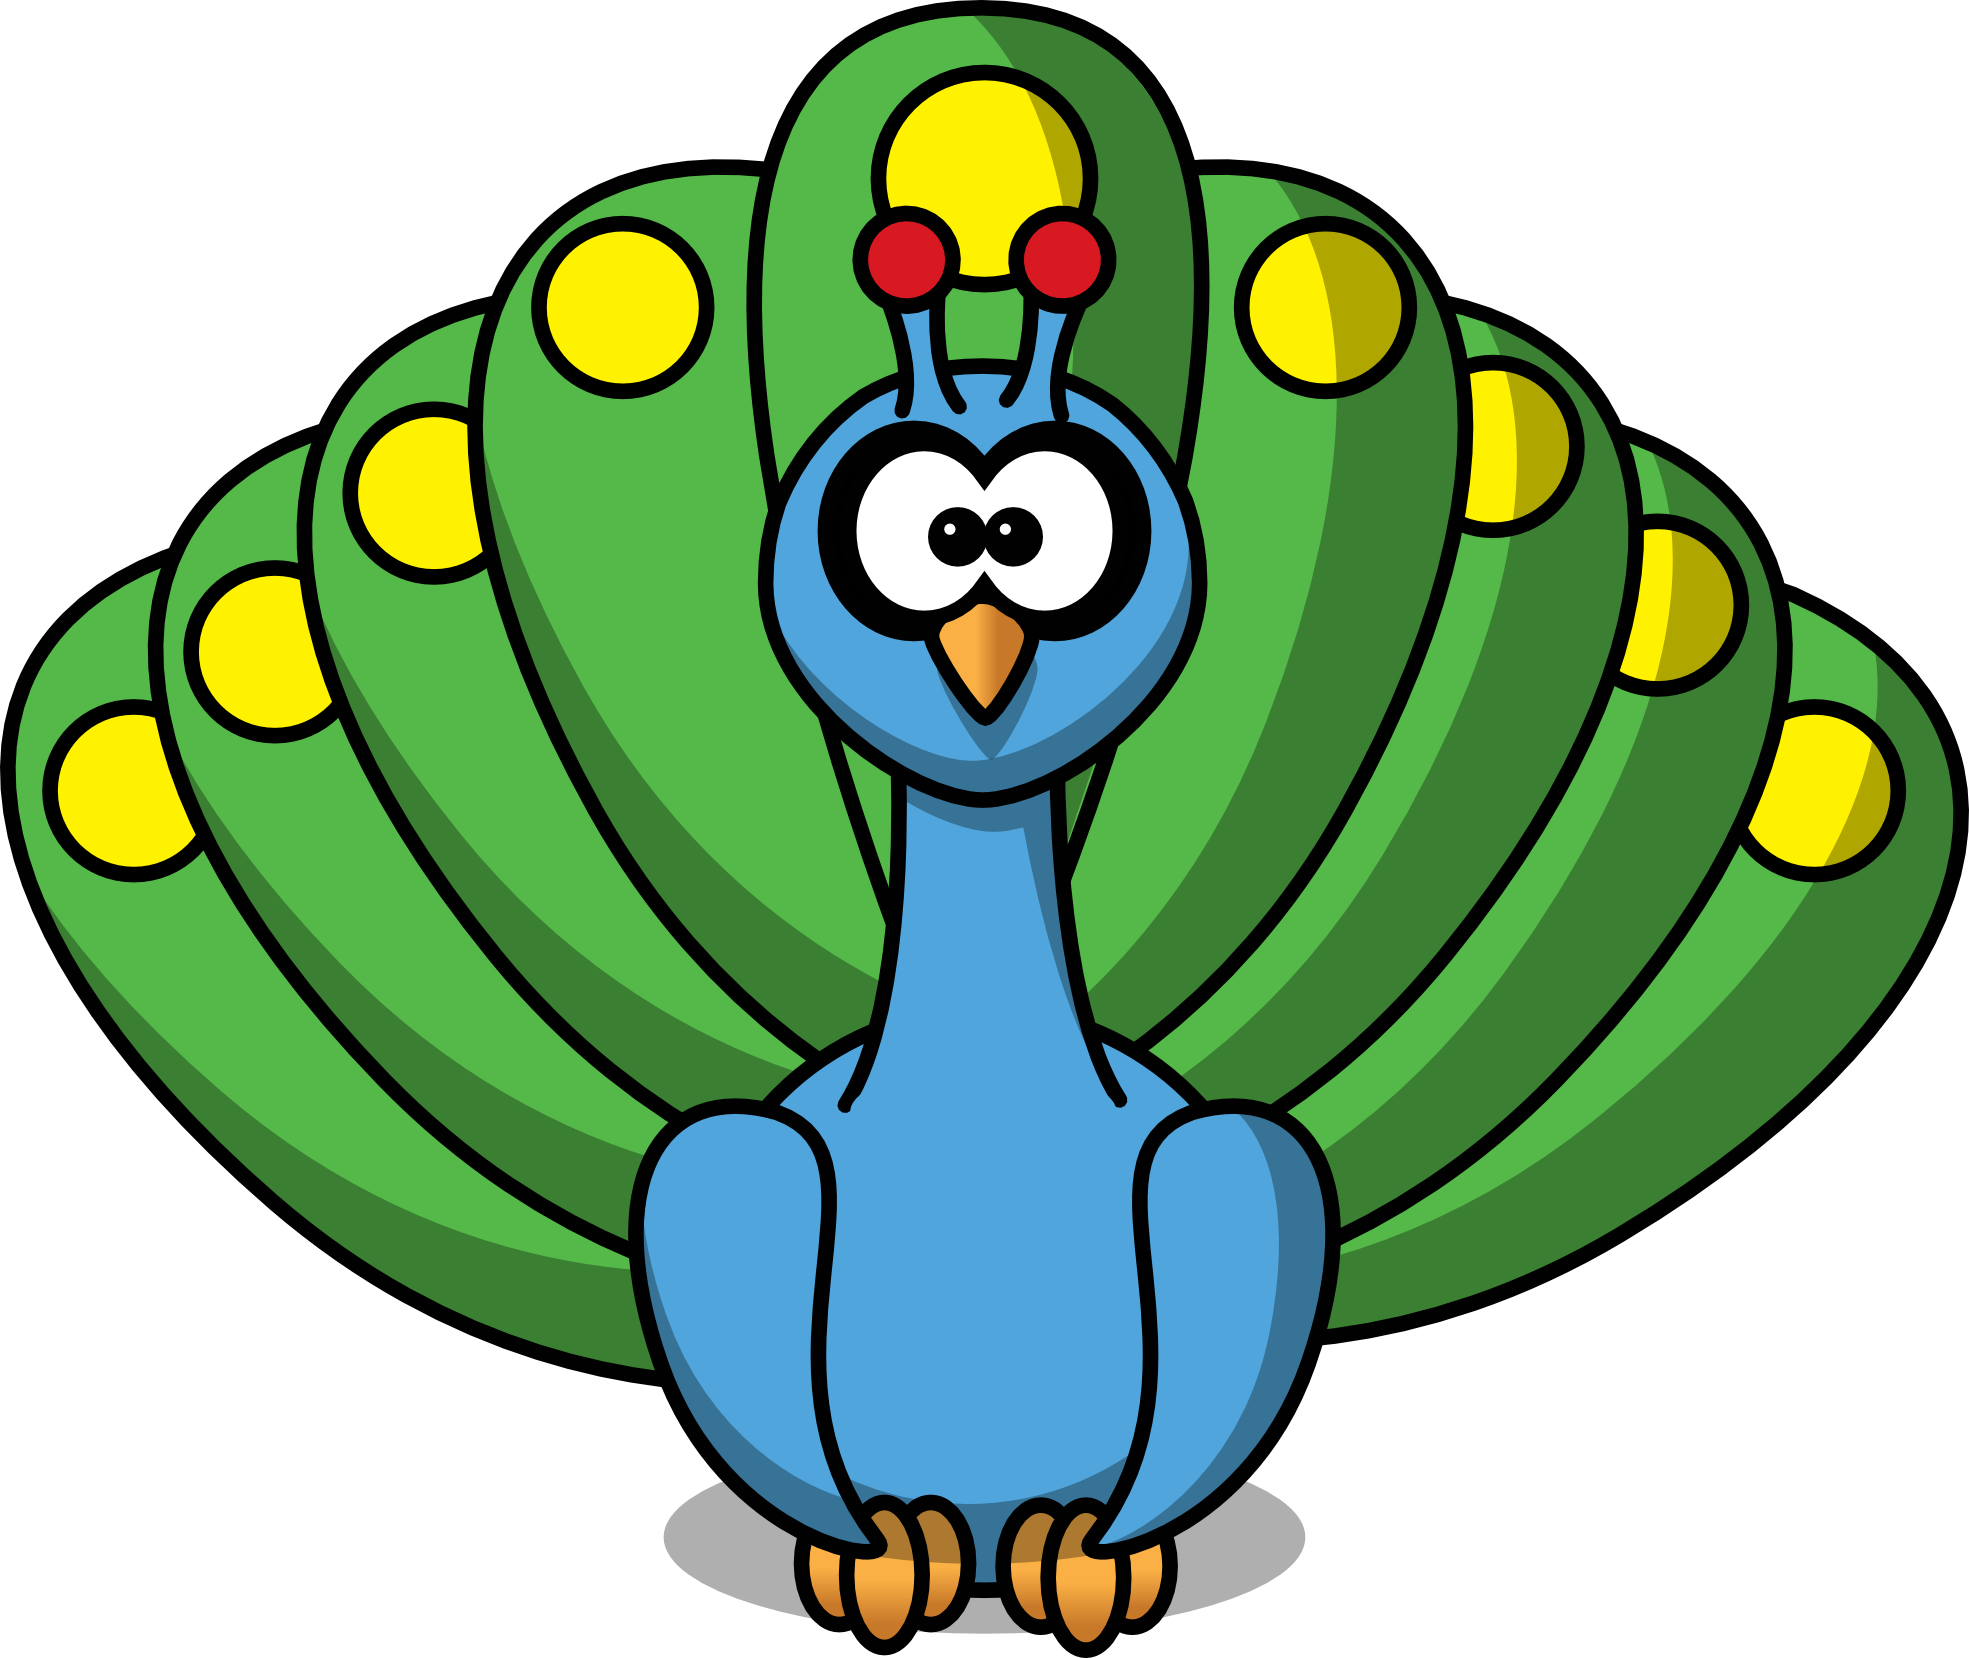 Peacock clipart vector Free Panda peacock%20clipart%20free Images Peacock